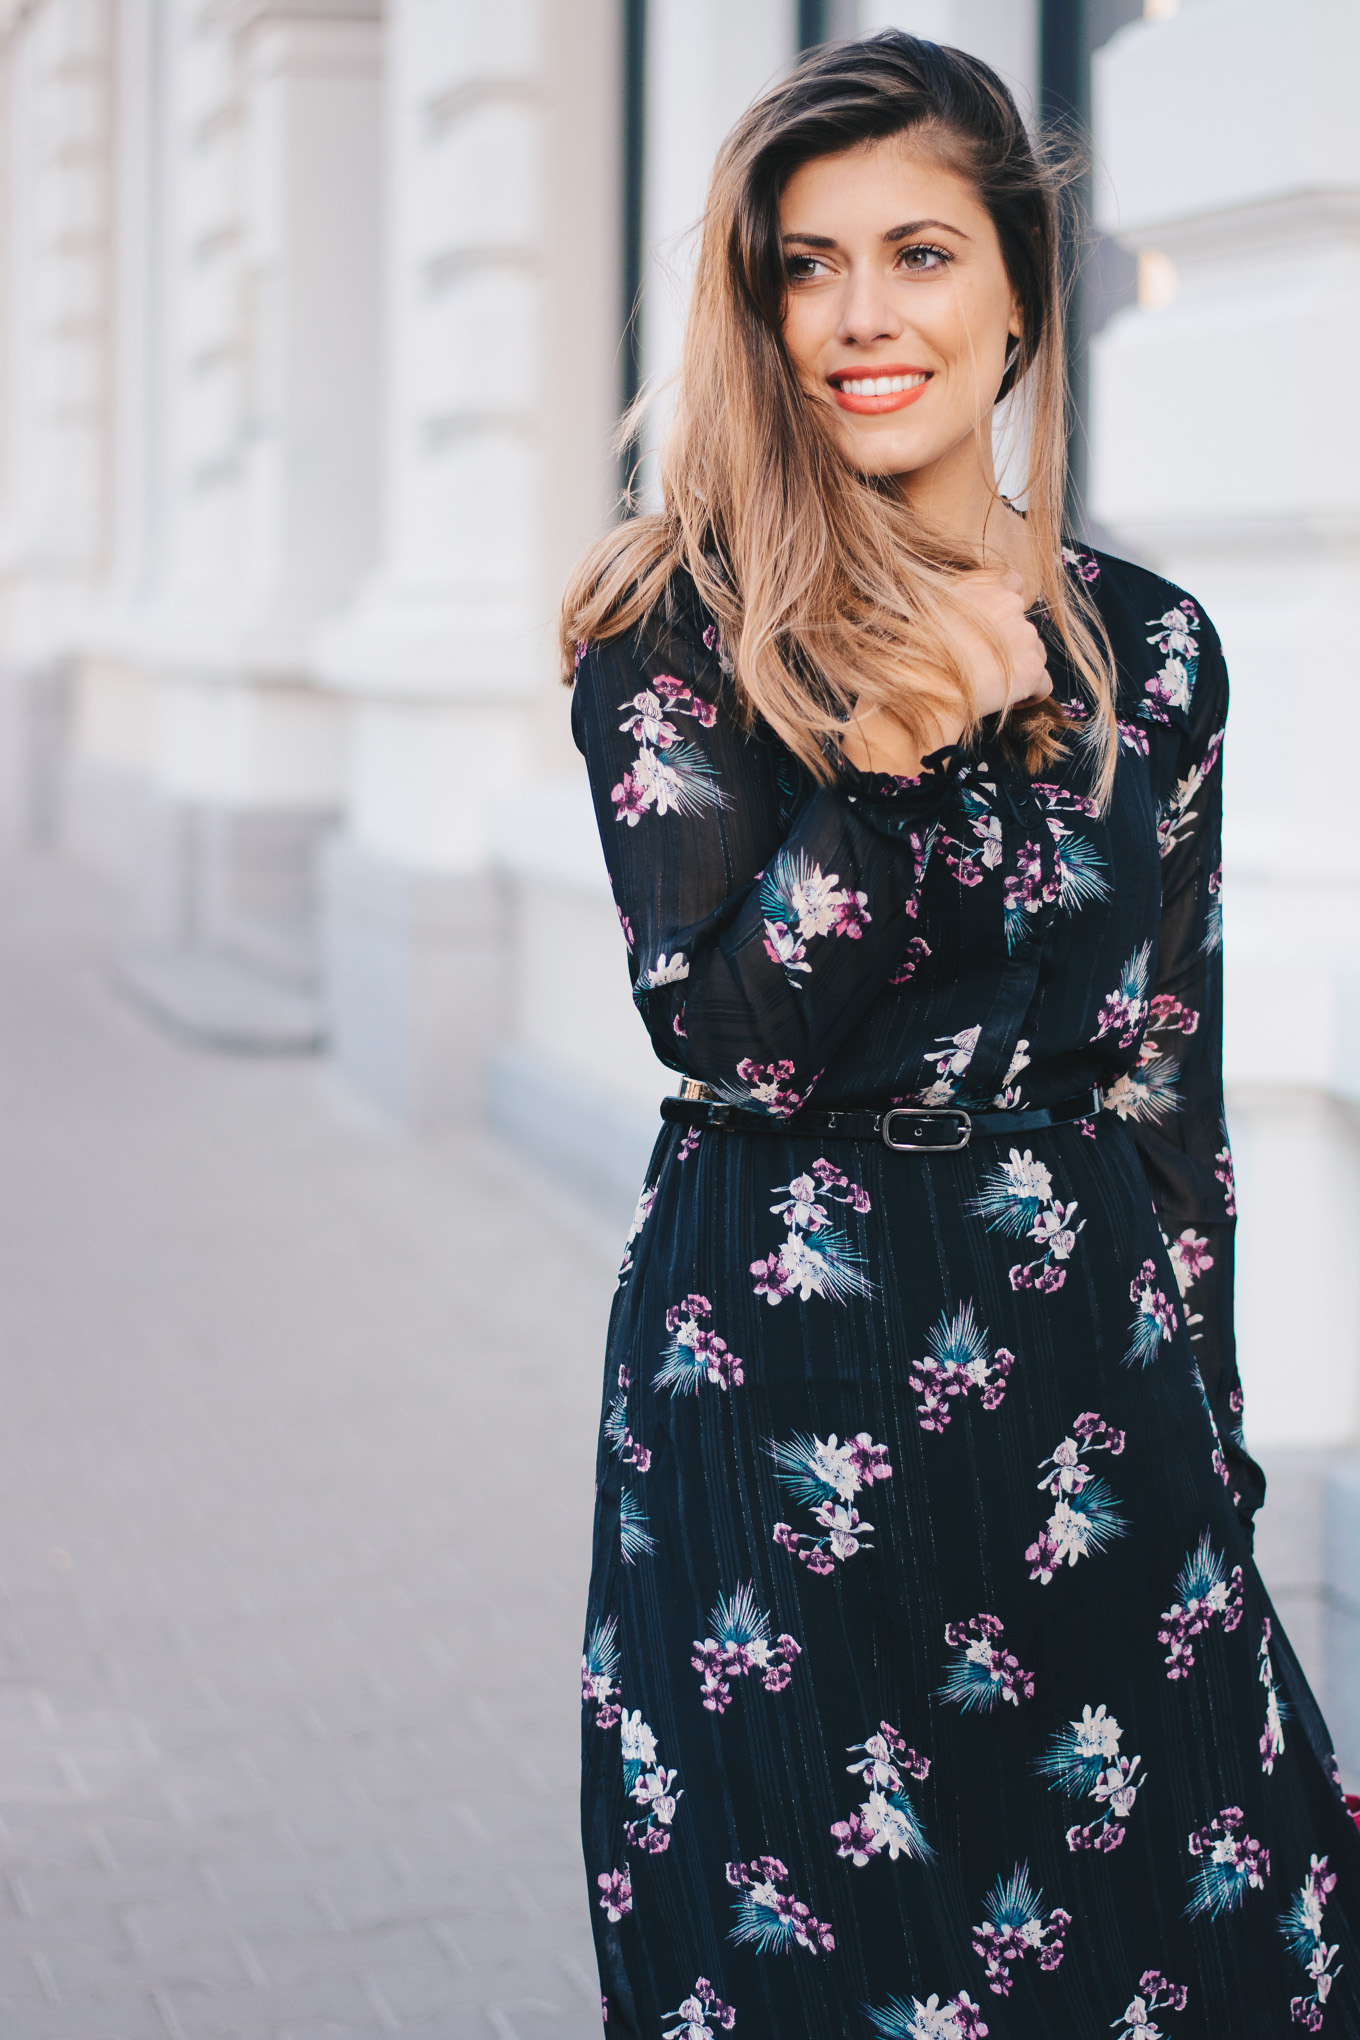 Blogger favorite floral dress